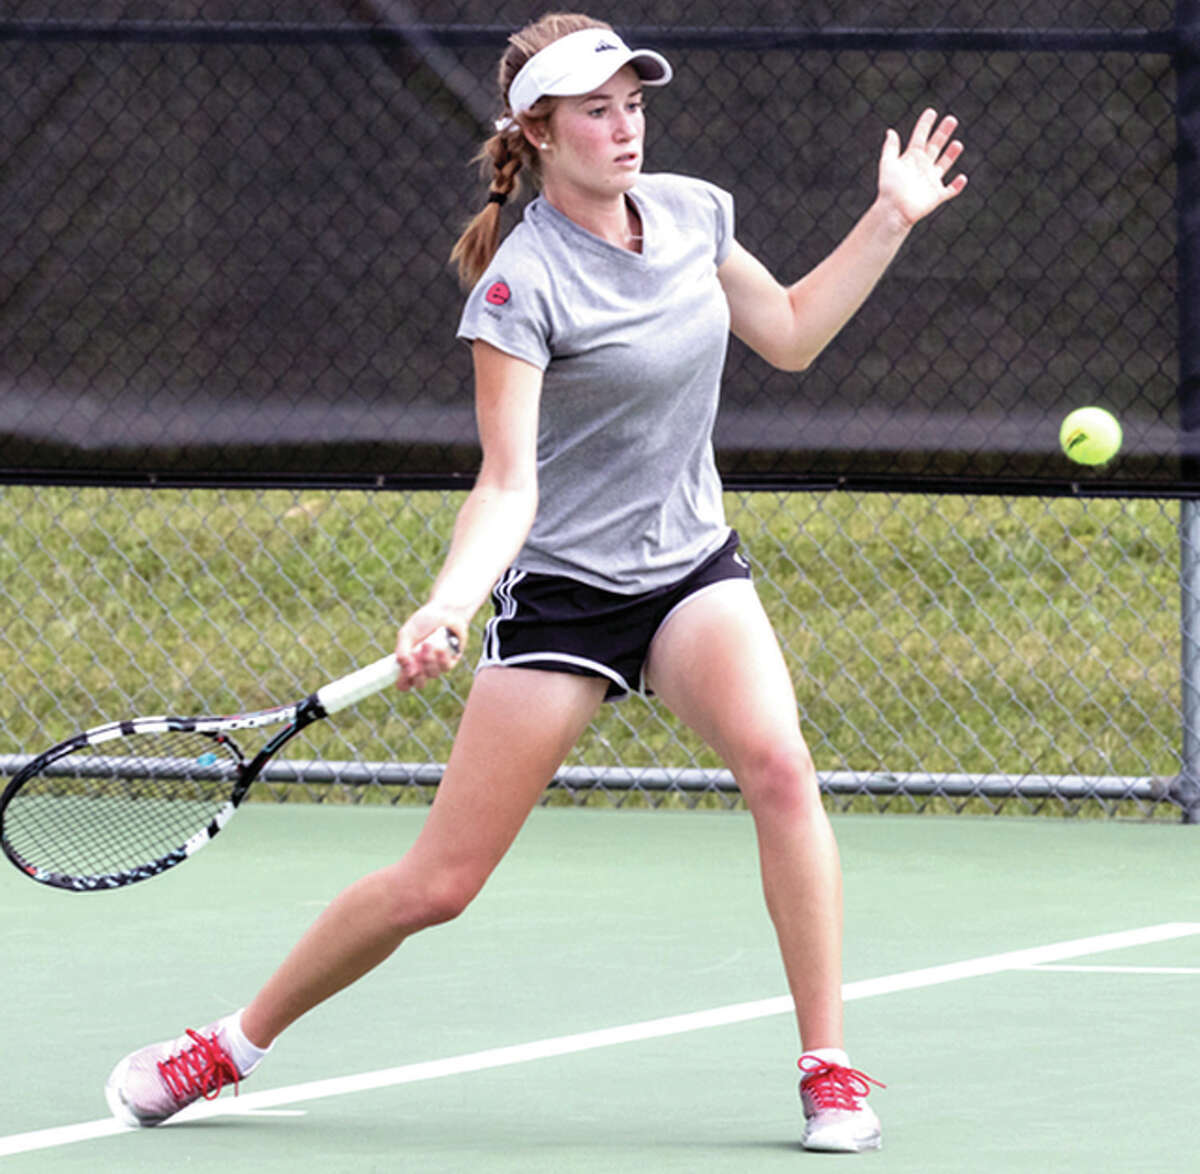 SIUE's Callaghan Adams, a freshman from Edwardsville, will be one of three Cougars taking part in the Intercollegiate Tennis Association Central Regionals this week in Minneapolis.